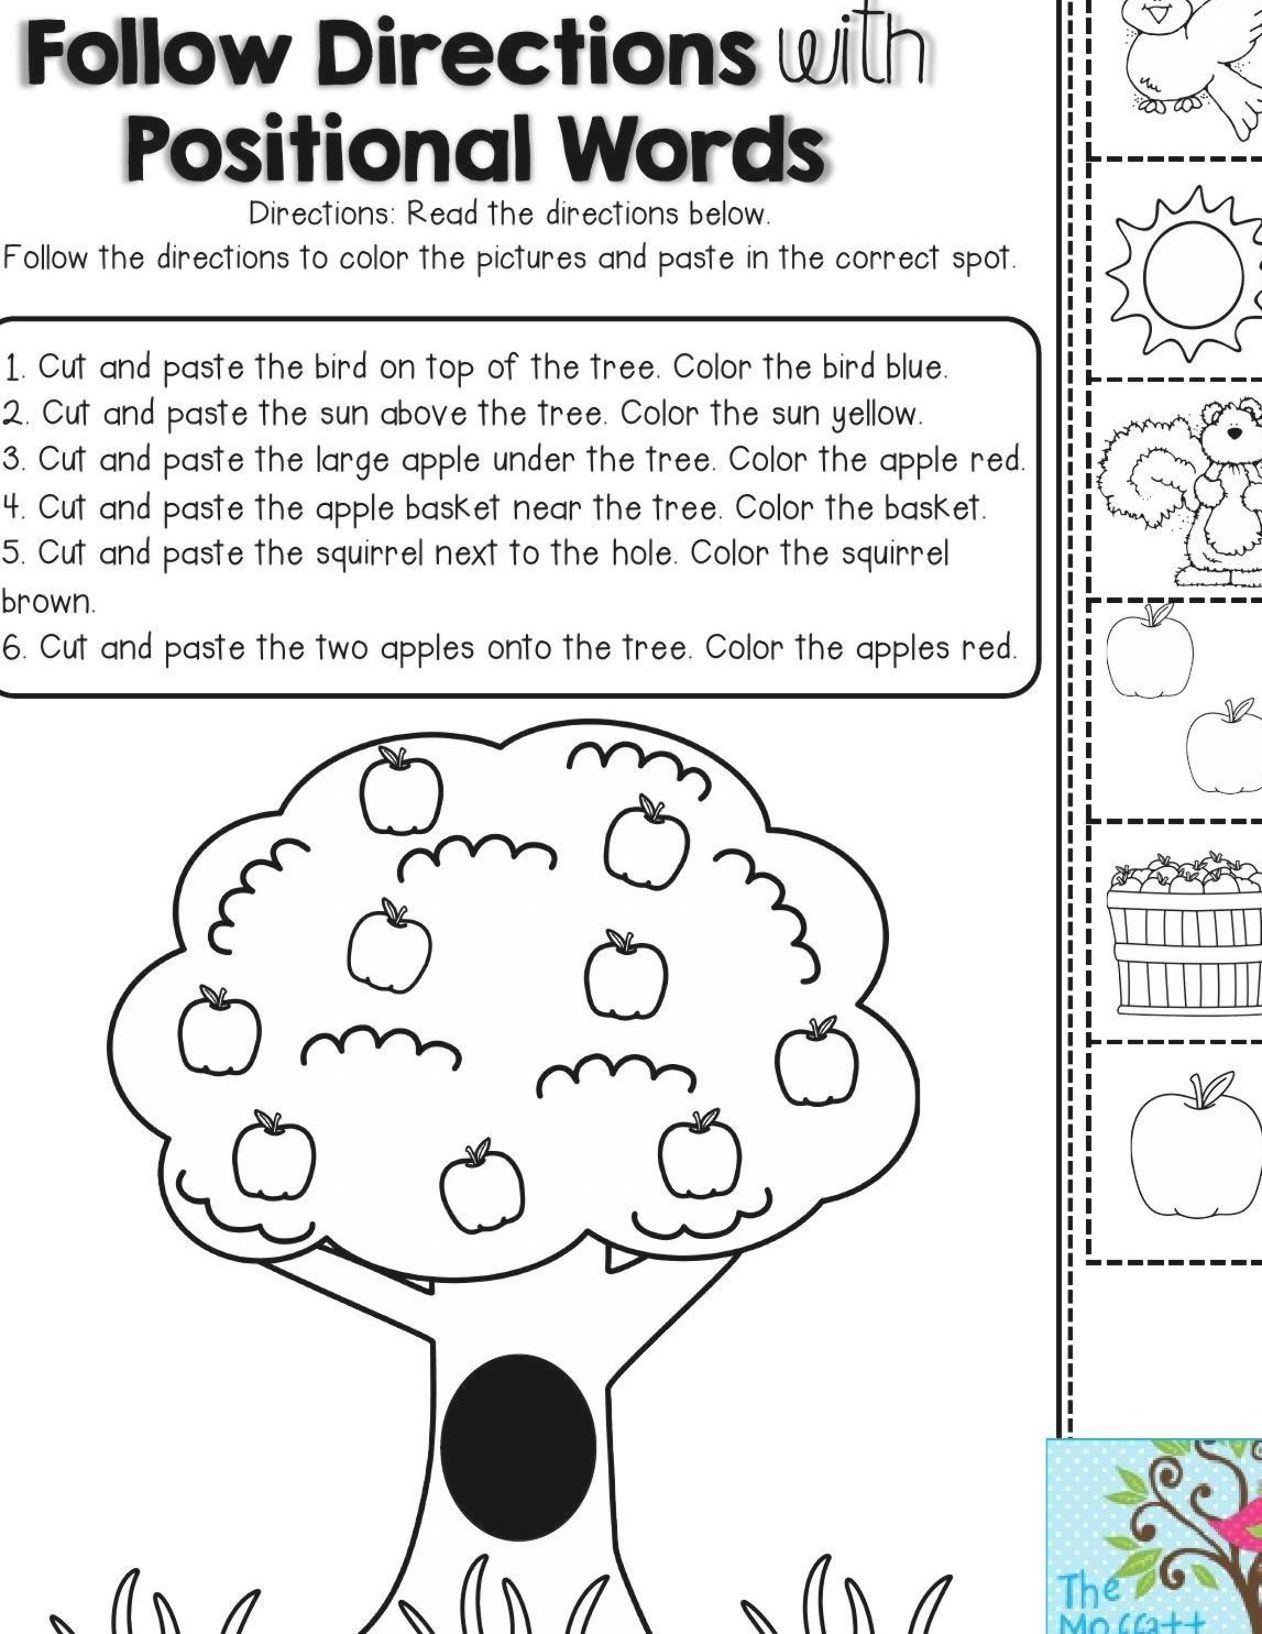 Follow Directions with Positional Words- fun activity for First Grade to  help stu…   Listening activities for kids [ 1634 x 1262 Pixel ]